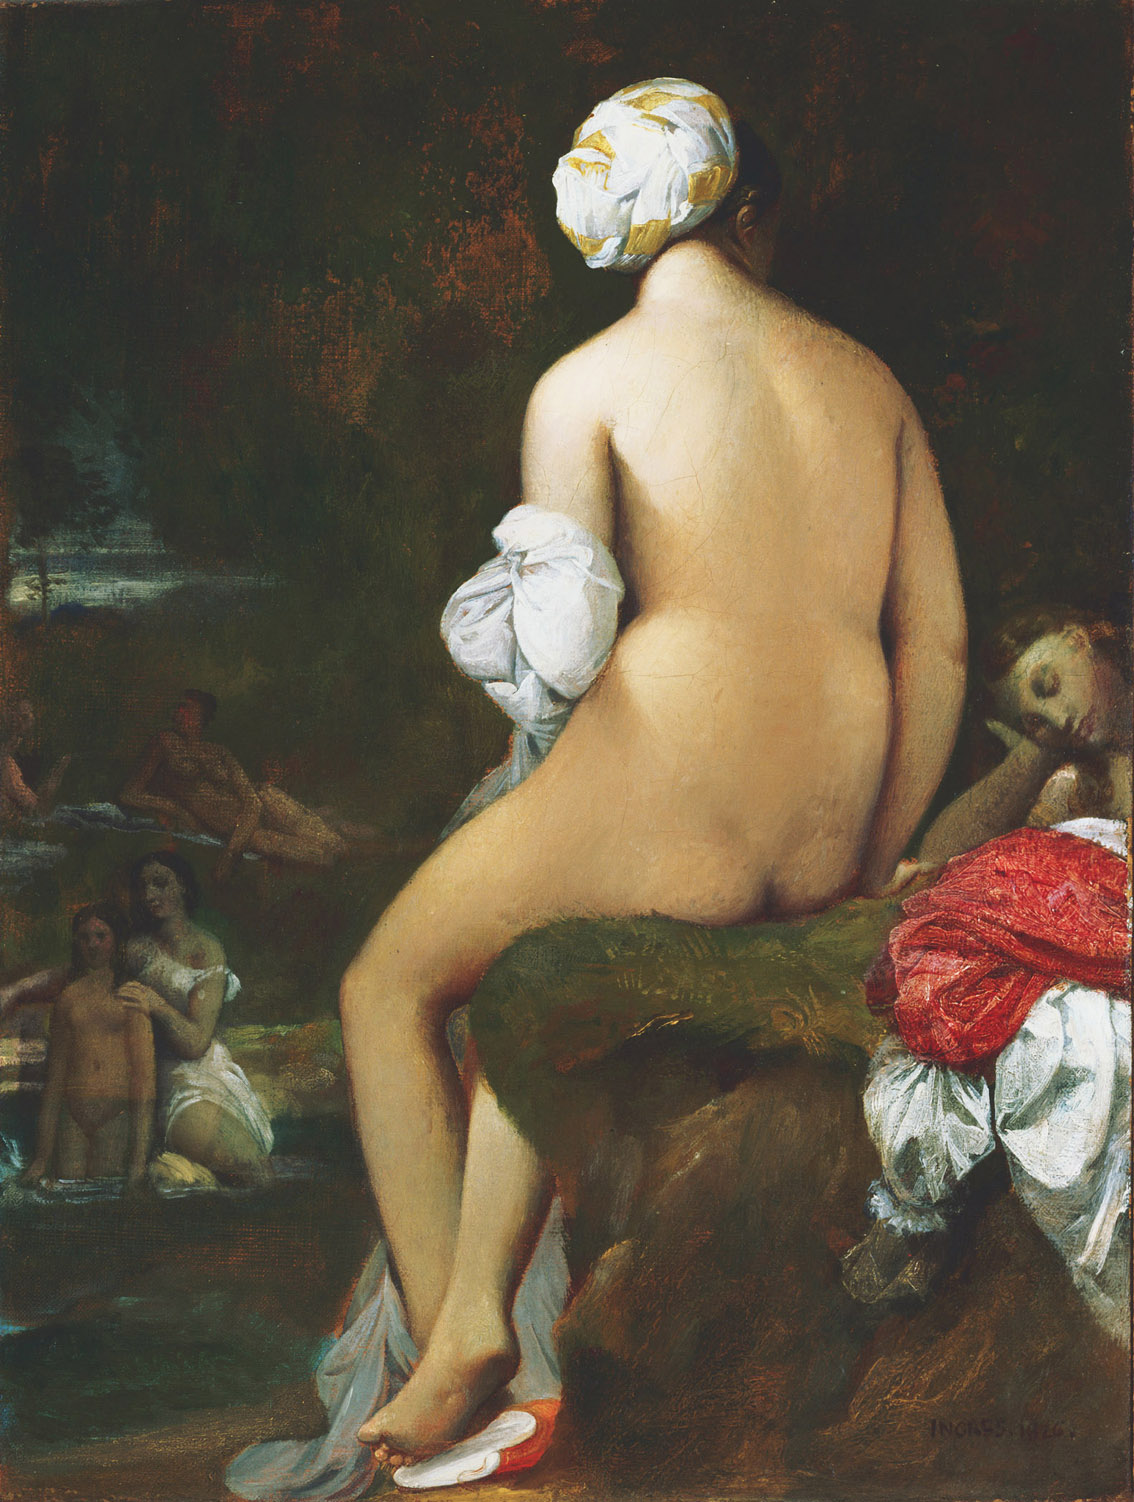 La pequeñabañista, por Jean-Auguste-Dominique Ingres, 1826, óleo sobre lienzo, 32,7 x 25,1 cm, The Phillips Collection, Washington, D.C., adquirido en 1948.